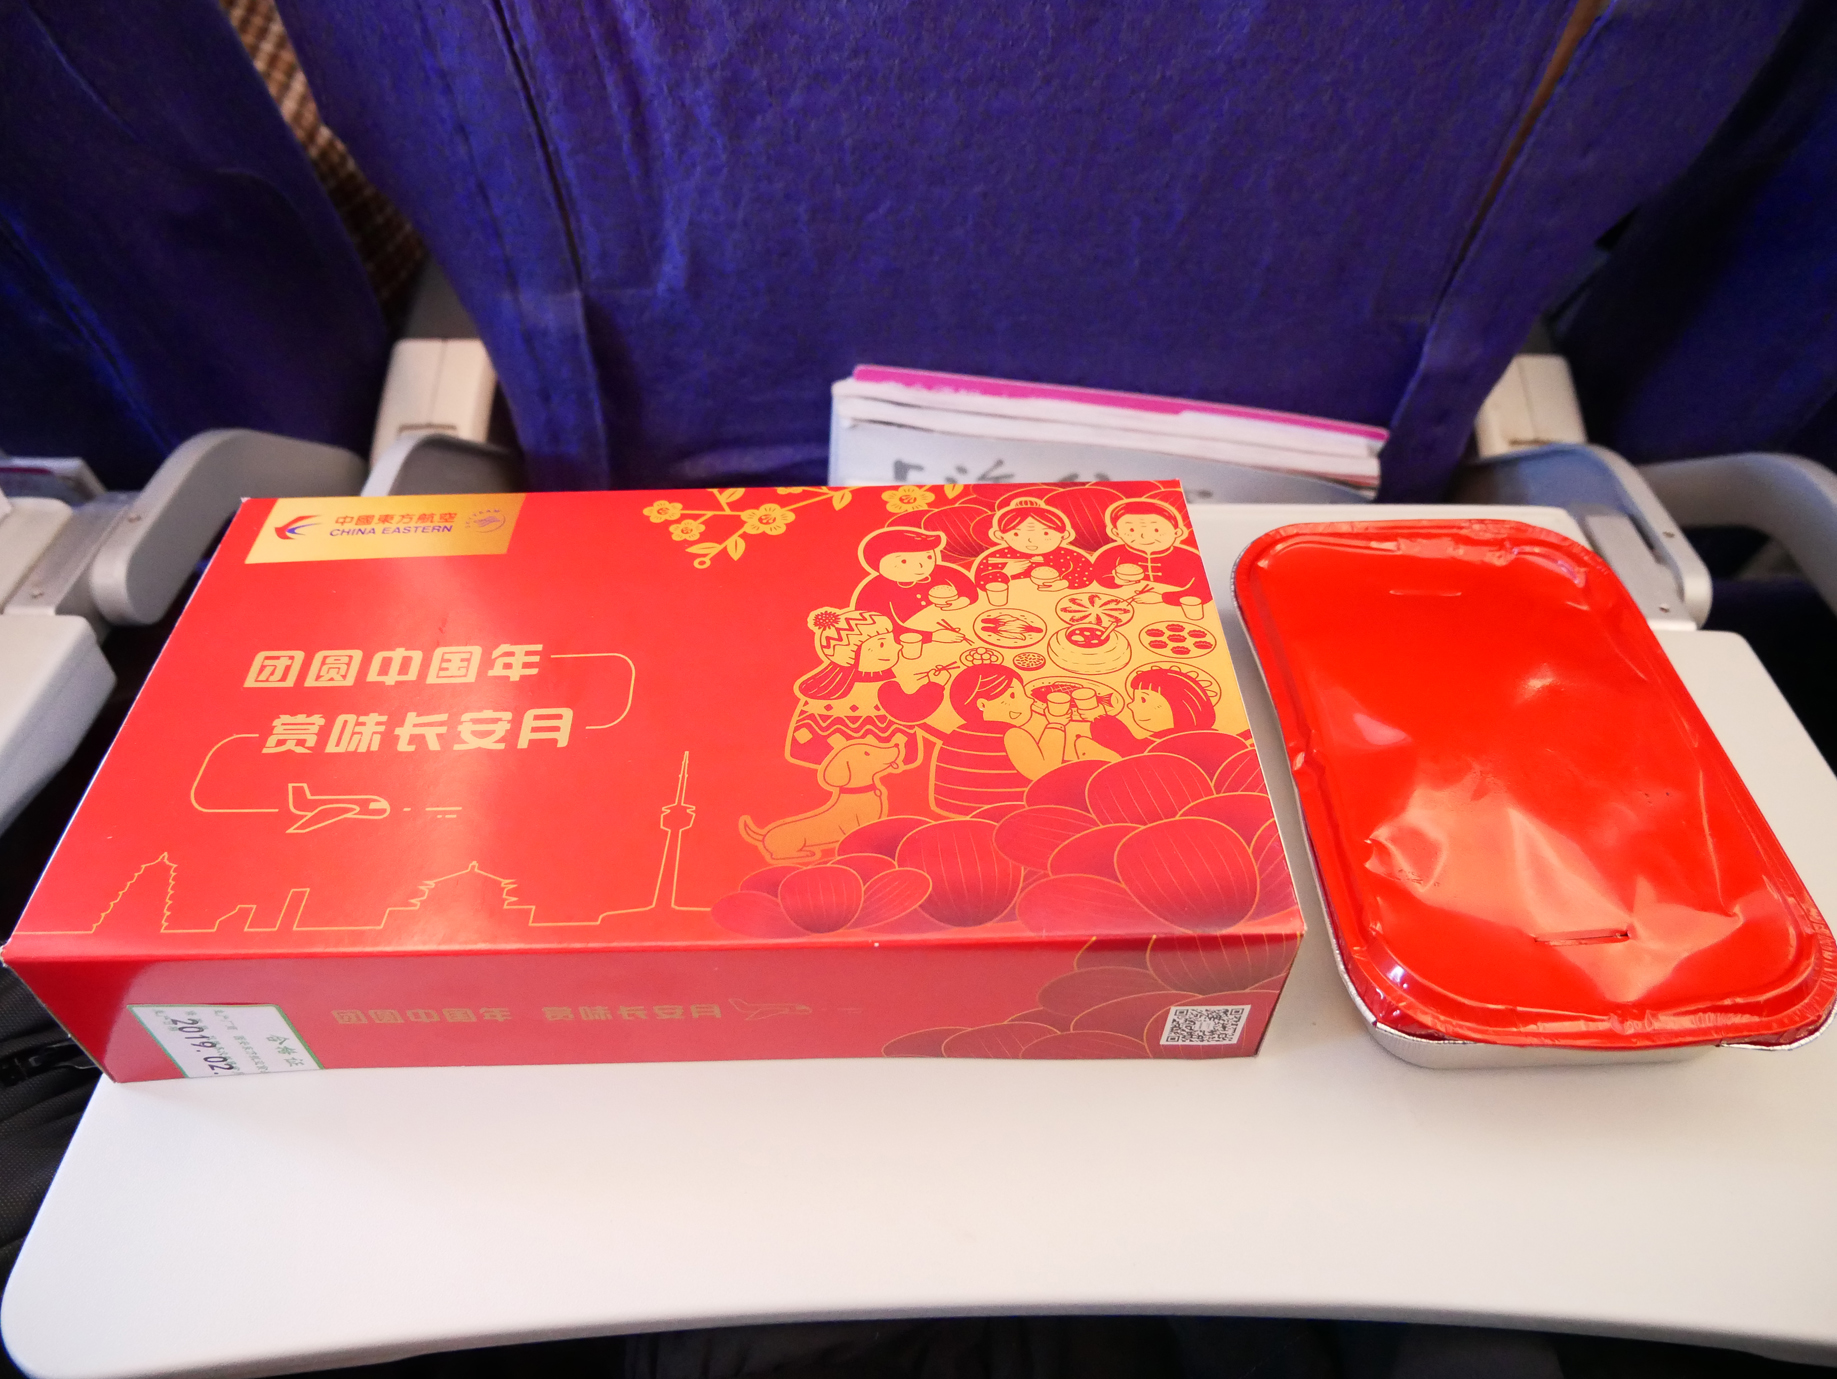 China Eastern meal box.jpg